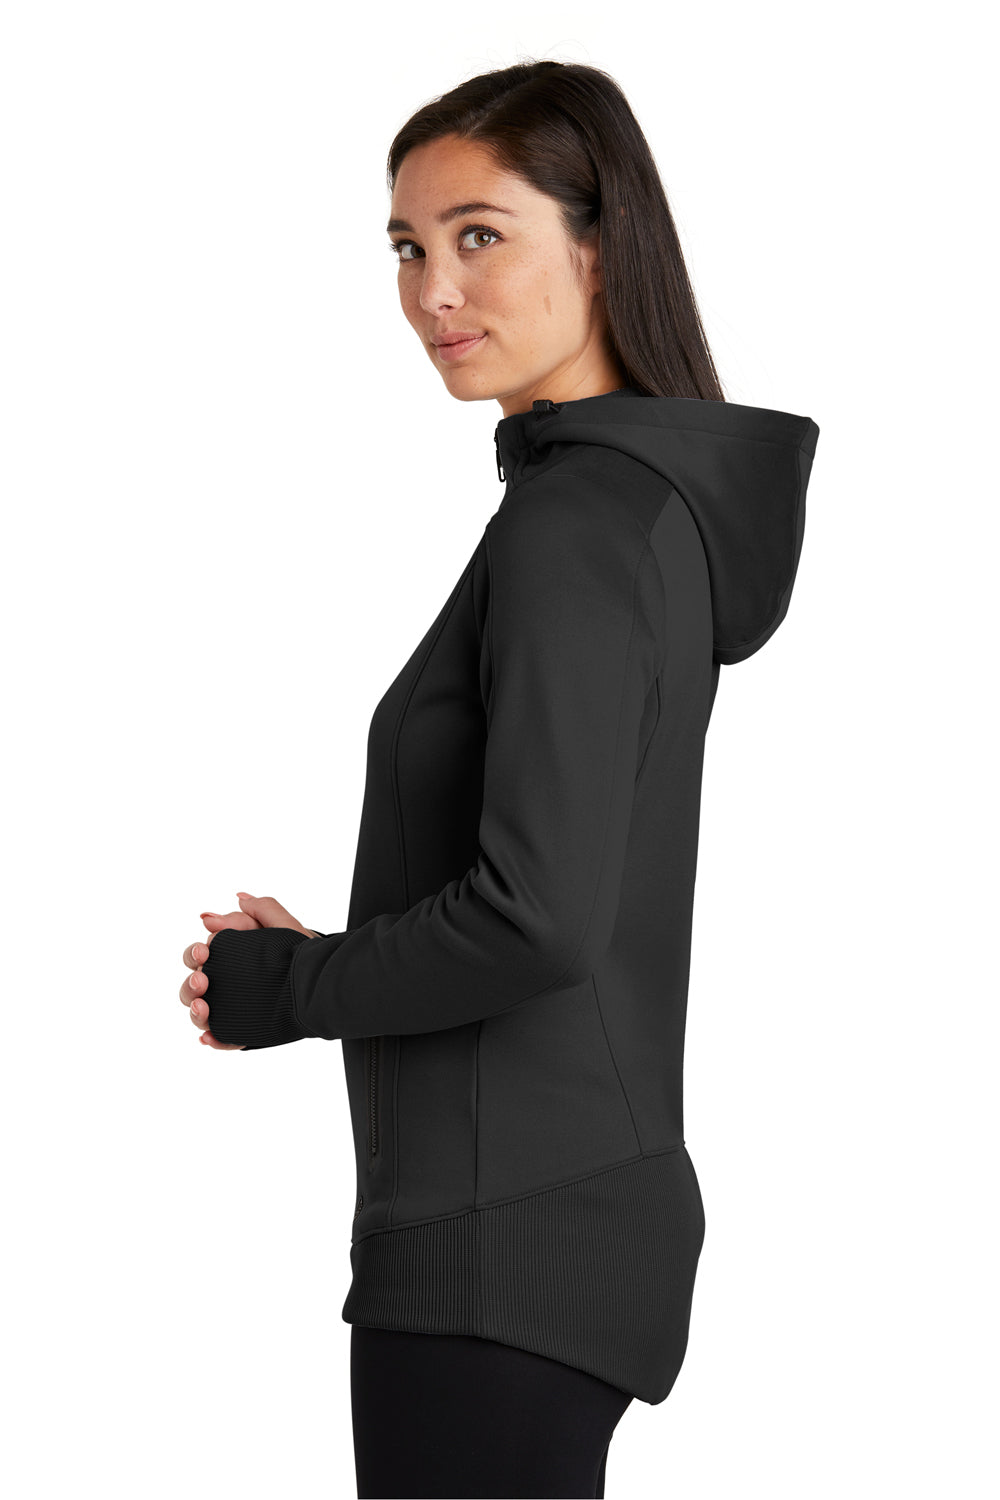 New Era LNEA522 Womens Venue Moisture Wicking Fleece Full Zip Hooded Sweatshirt Hoodie Black Side